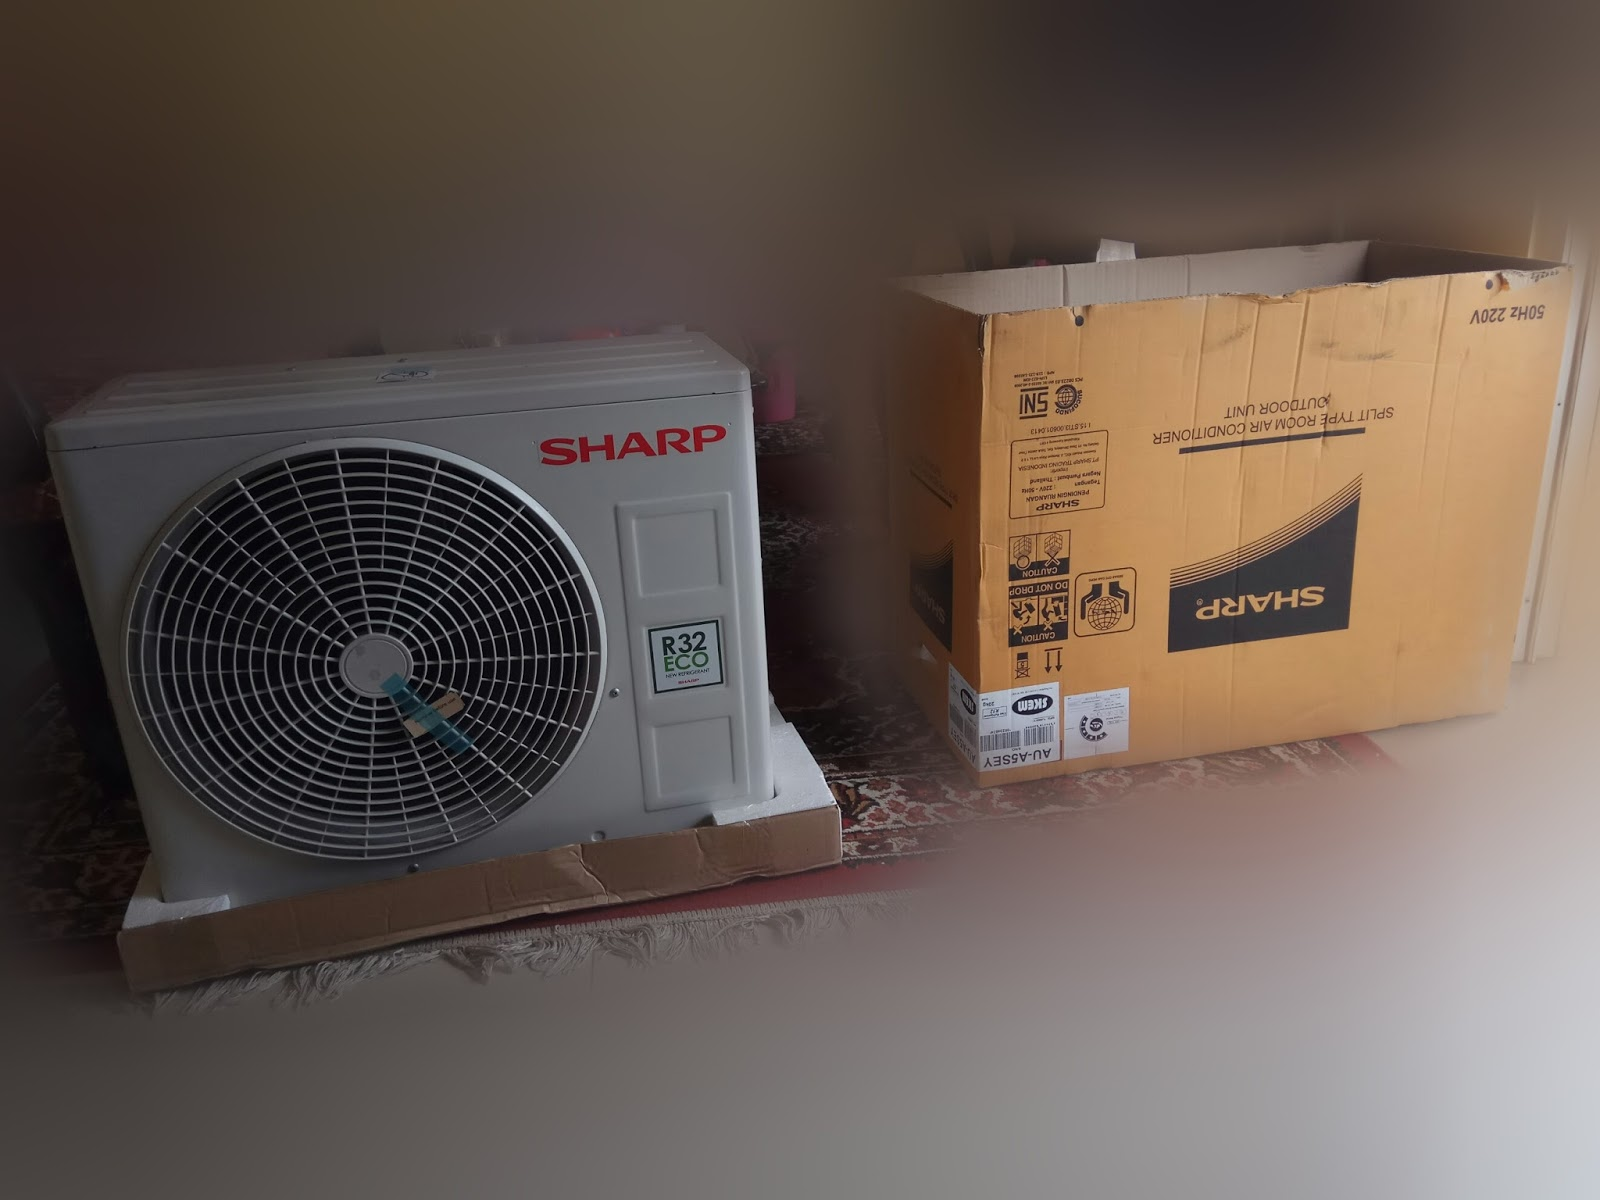 Sharp Air Conditioner Jetstream Plasmacluster Series 05pk Ahap5ssy Ac Split Sayonara Panas Ah Ap5shl 05 Pk Low Watt Putih Outdoor A5sey Dengan Tipe Au Tampak Di Badan